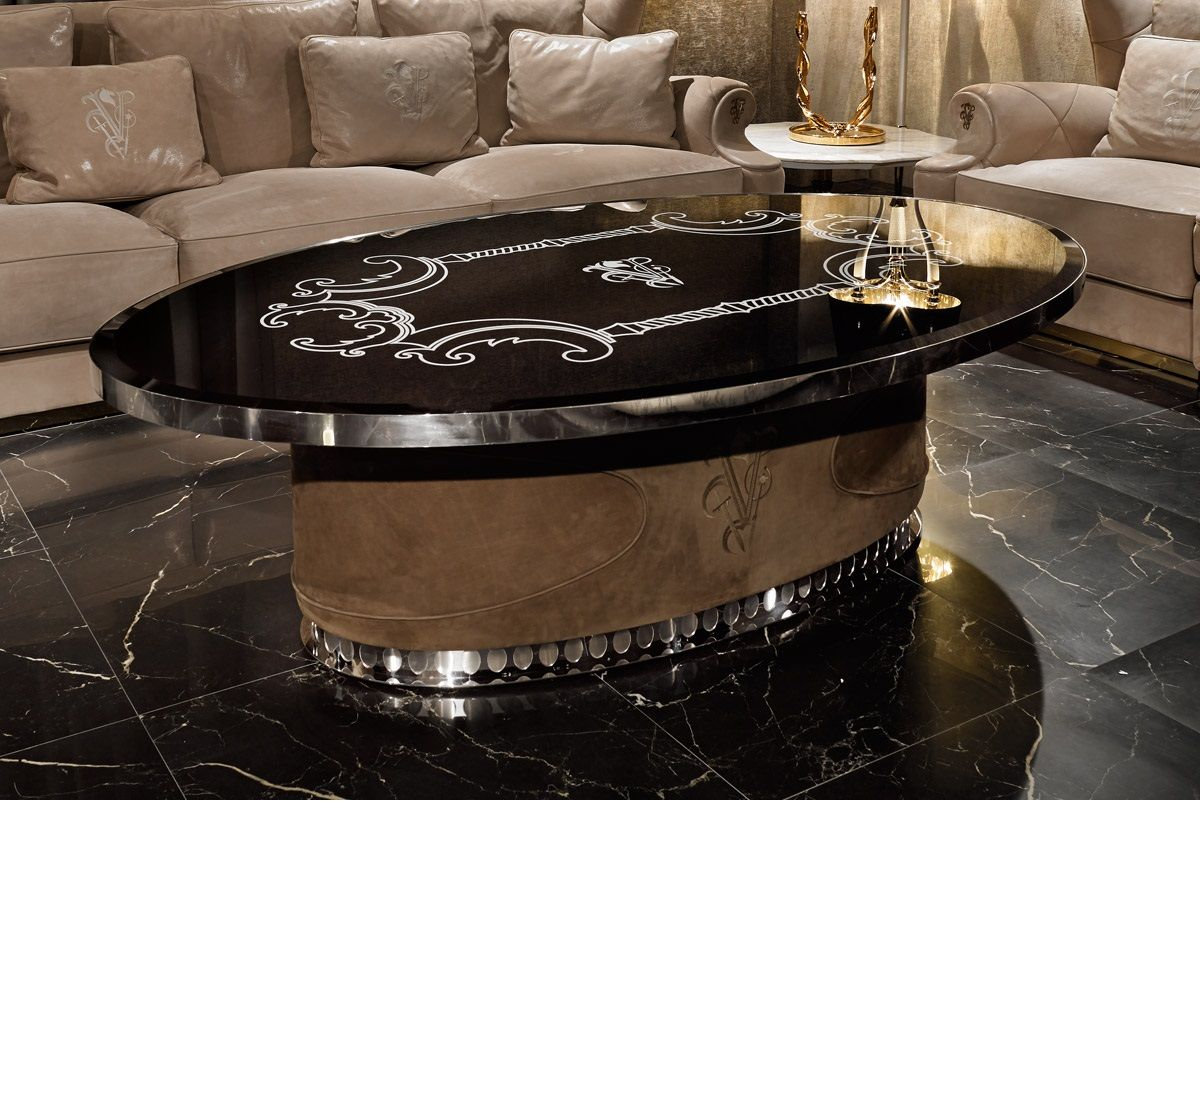 Instyle Decor Com Luxury Coffee Tables Cocktail Tables Luxury Interior Design Luxury Life Luxury Coffee Table Custom Coffee Table Contemporary Coffee Table